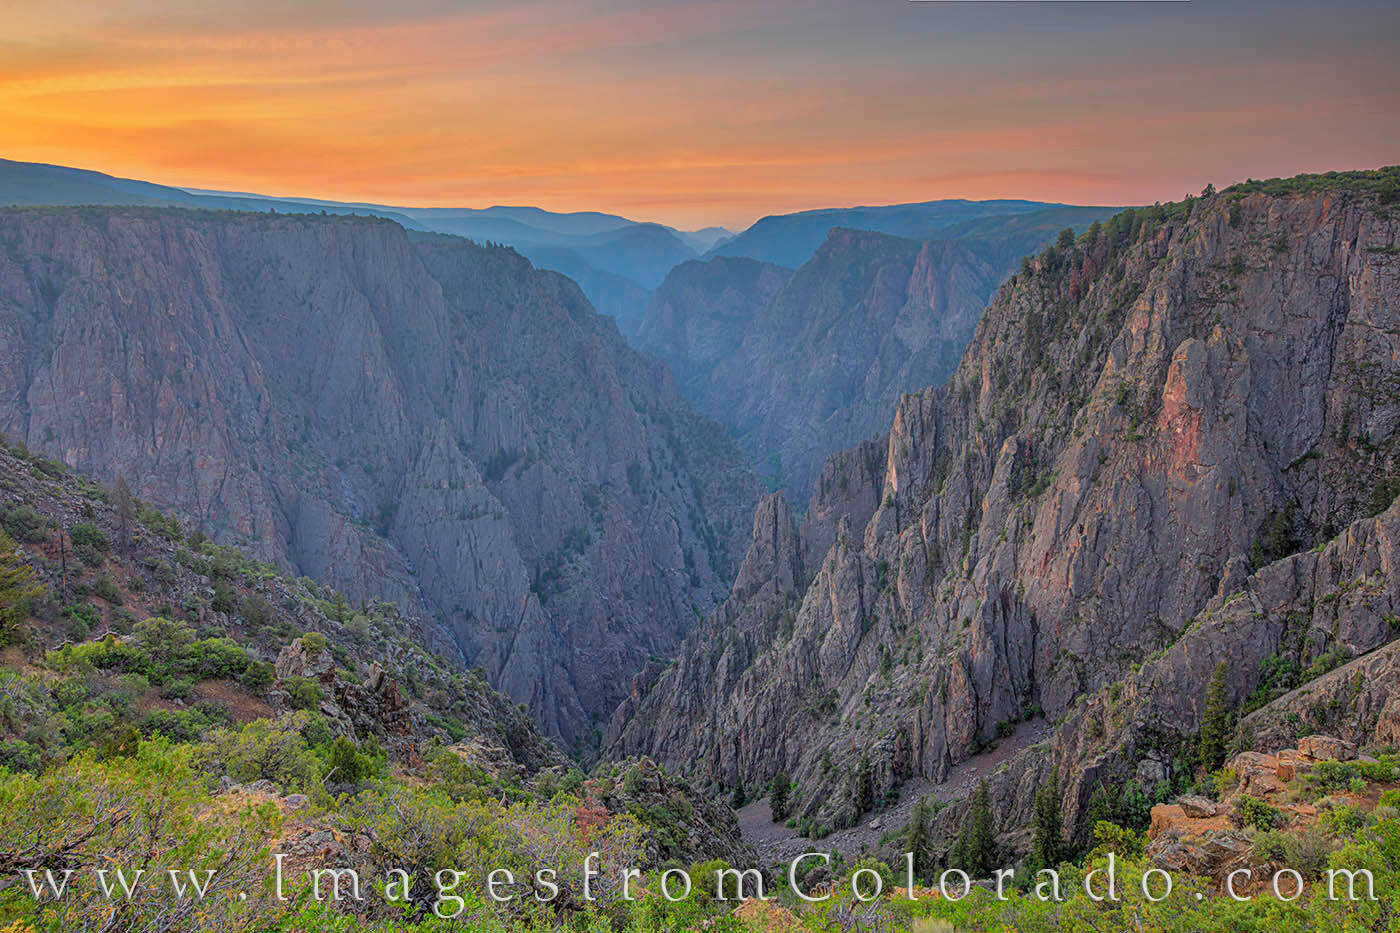 The sky was lit in shades of orange over the Black Canyon of the Gunnison on this summer morning. This deep gorge surrounded...